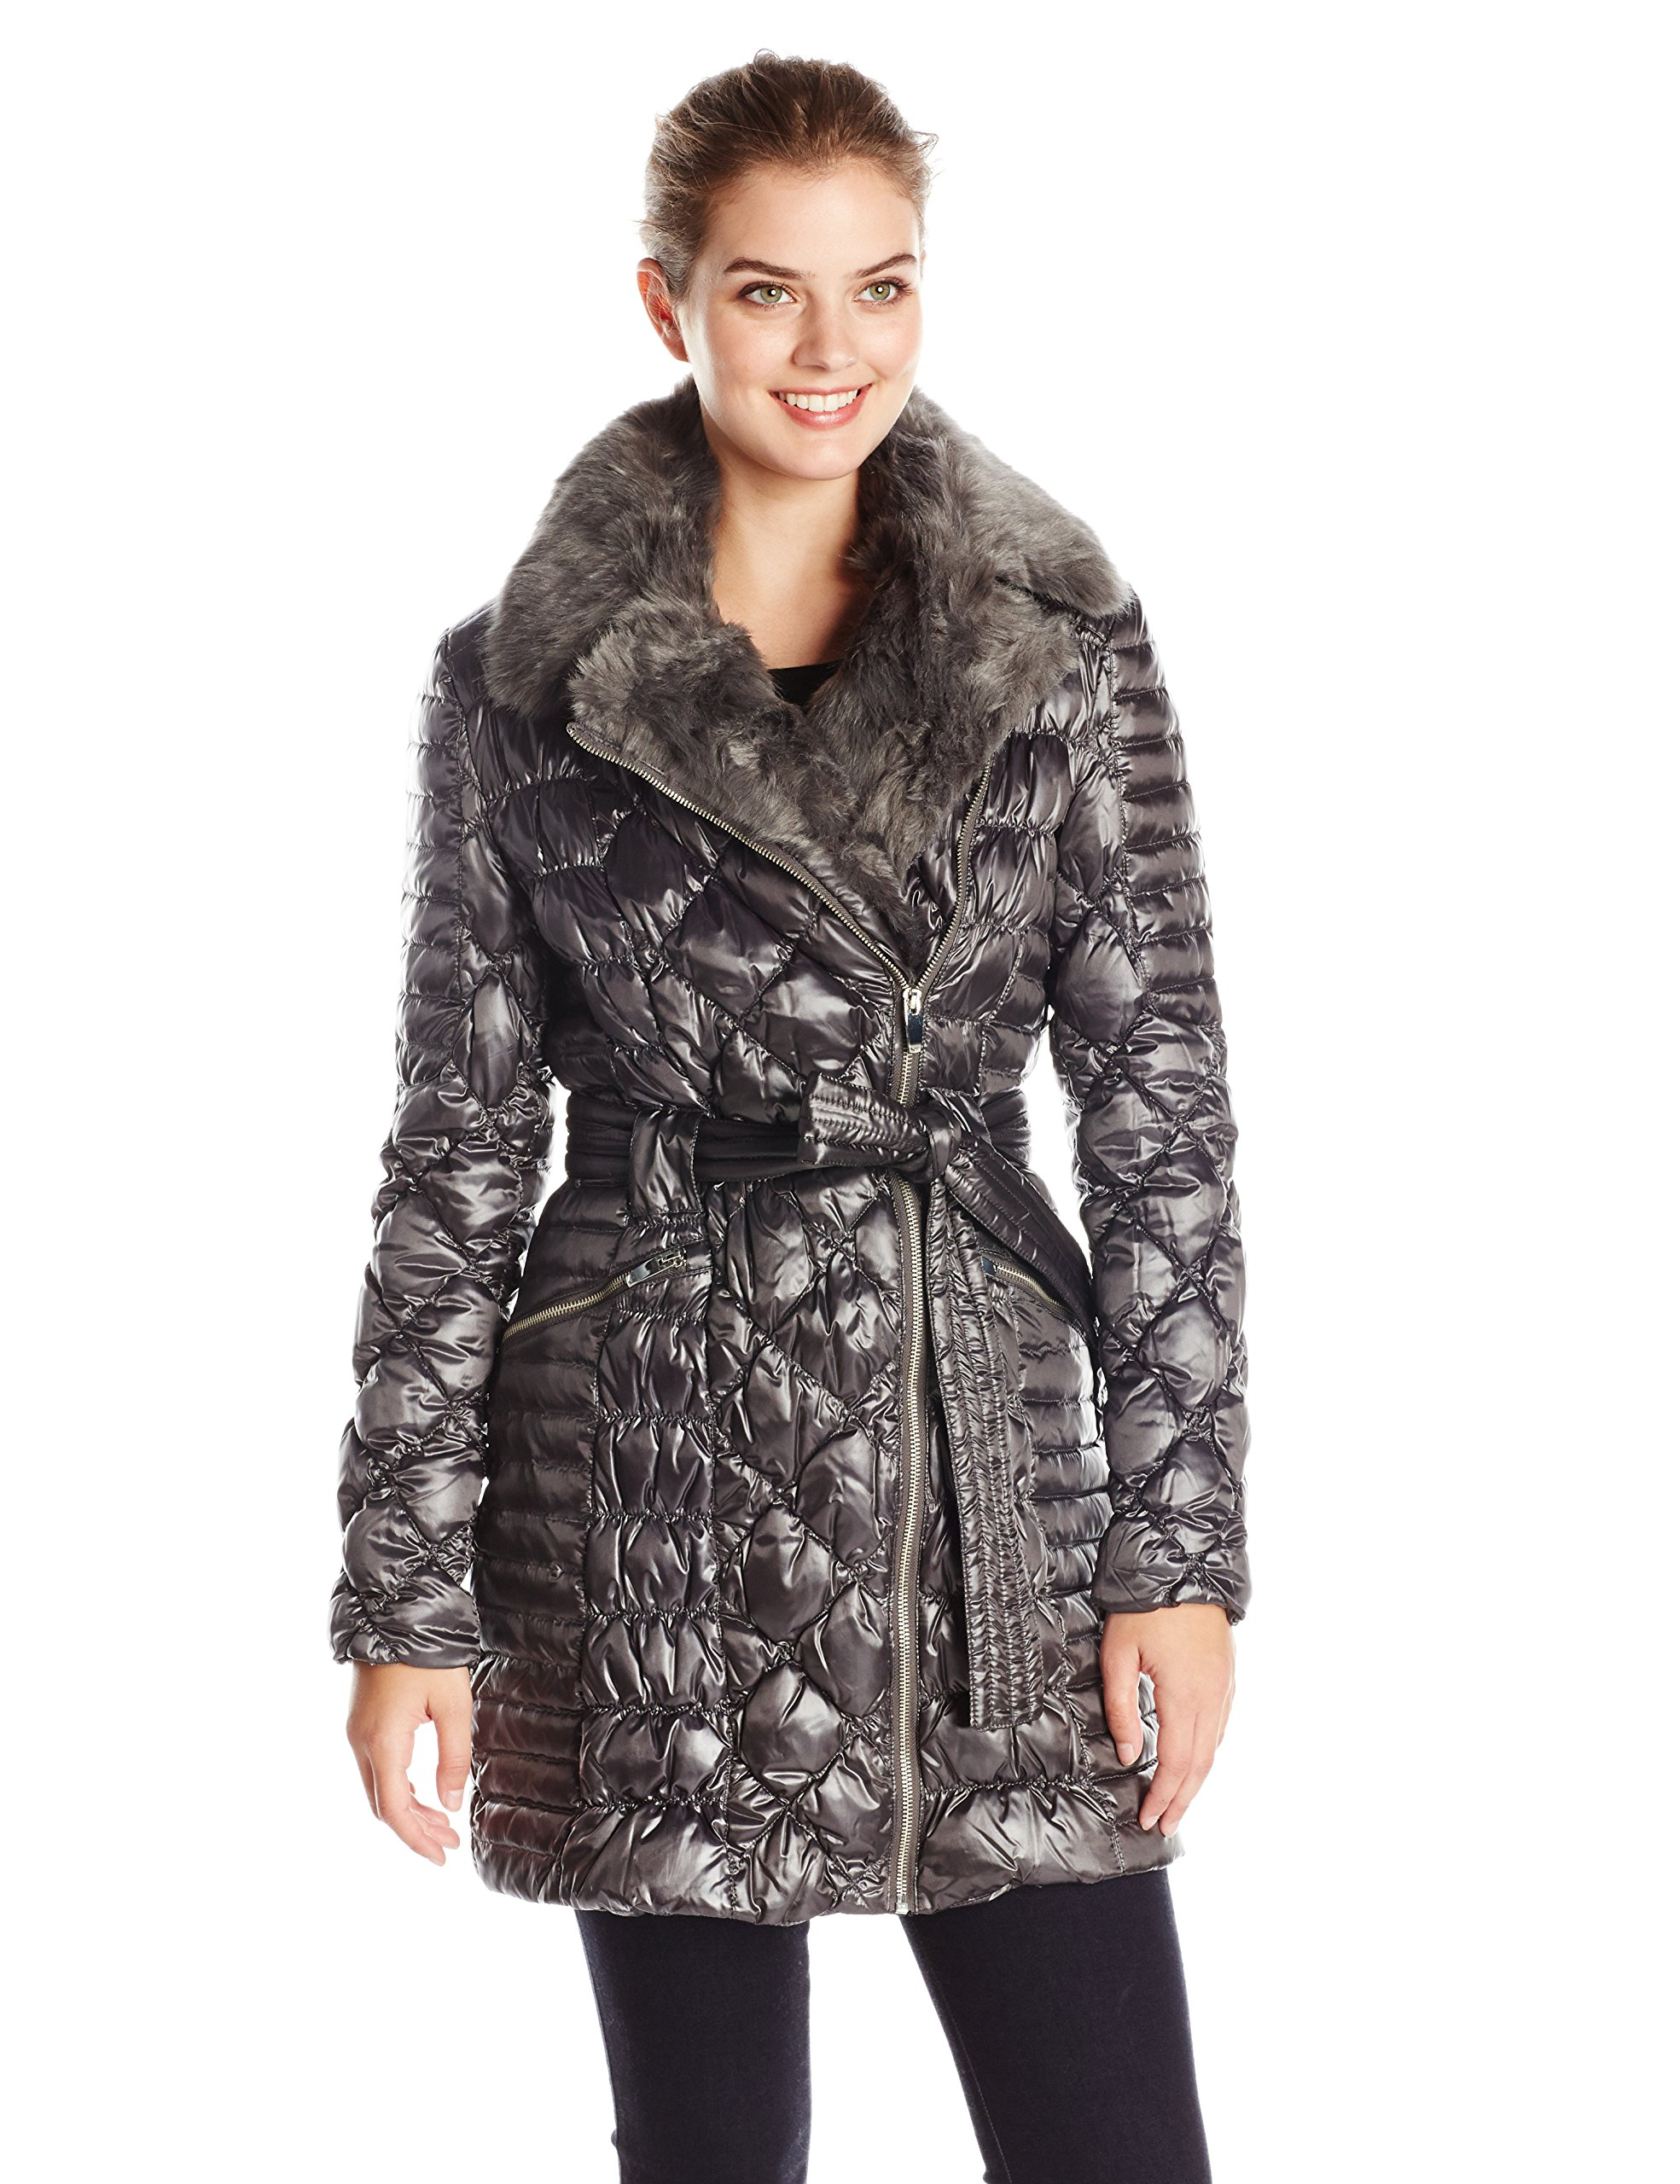 Via Spiga Women's Diamond Quilted Down Coat with Asymmetrical Zip and Faux Fur, Gunmetal, X-Small